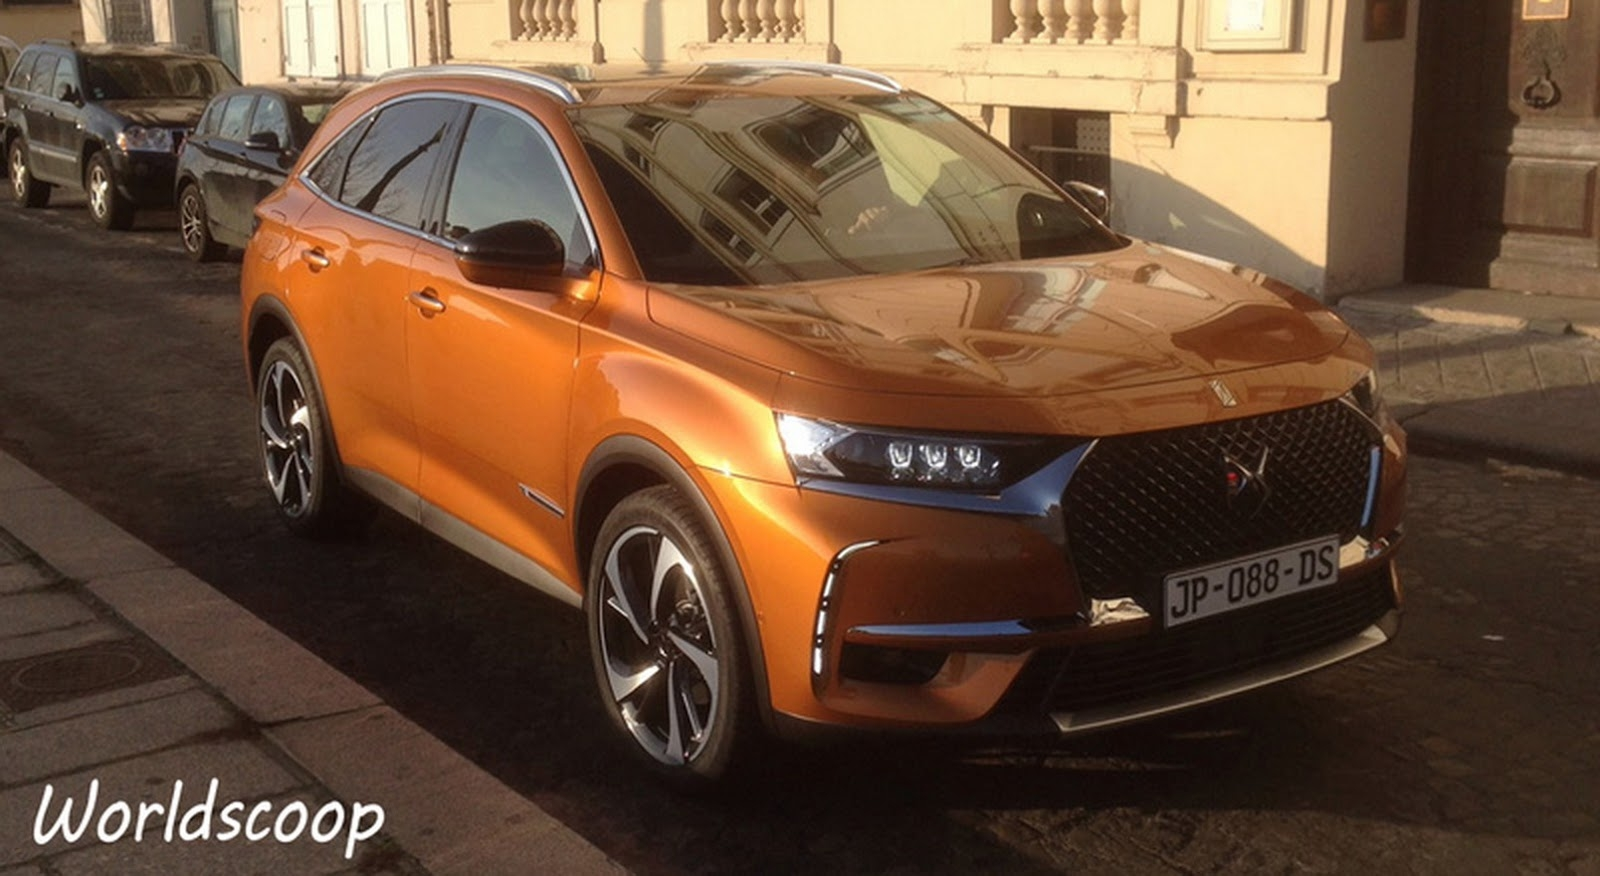 le suv ds7 crossback d boule dans les rues de paris. Black Bedroom Furniture Sets. Home Design Ideas